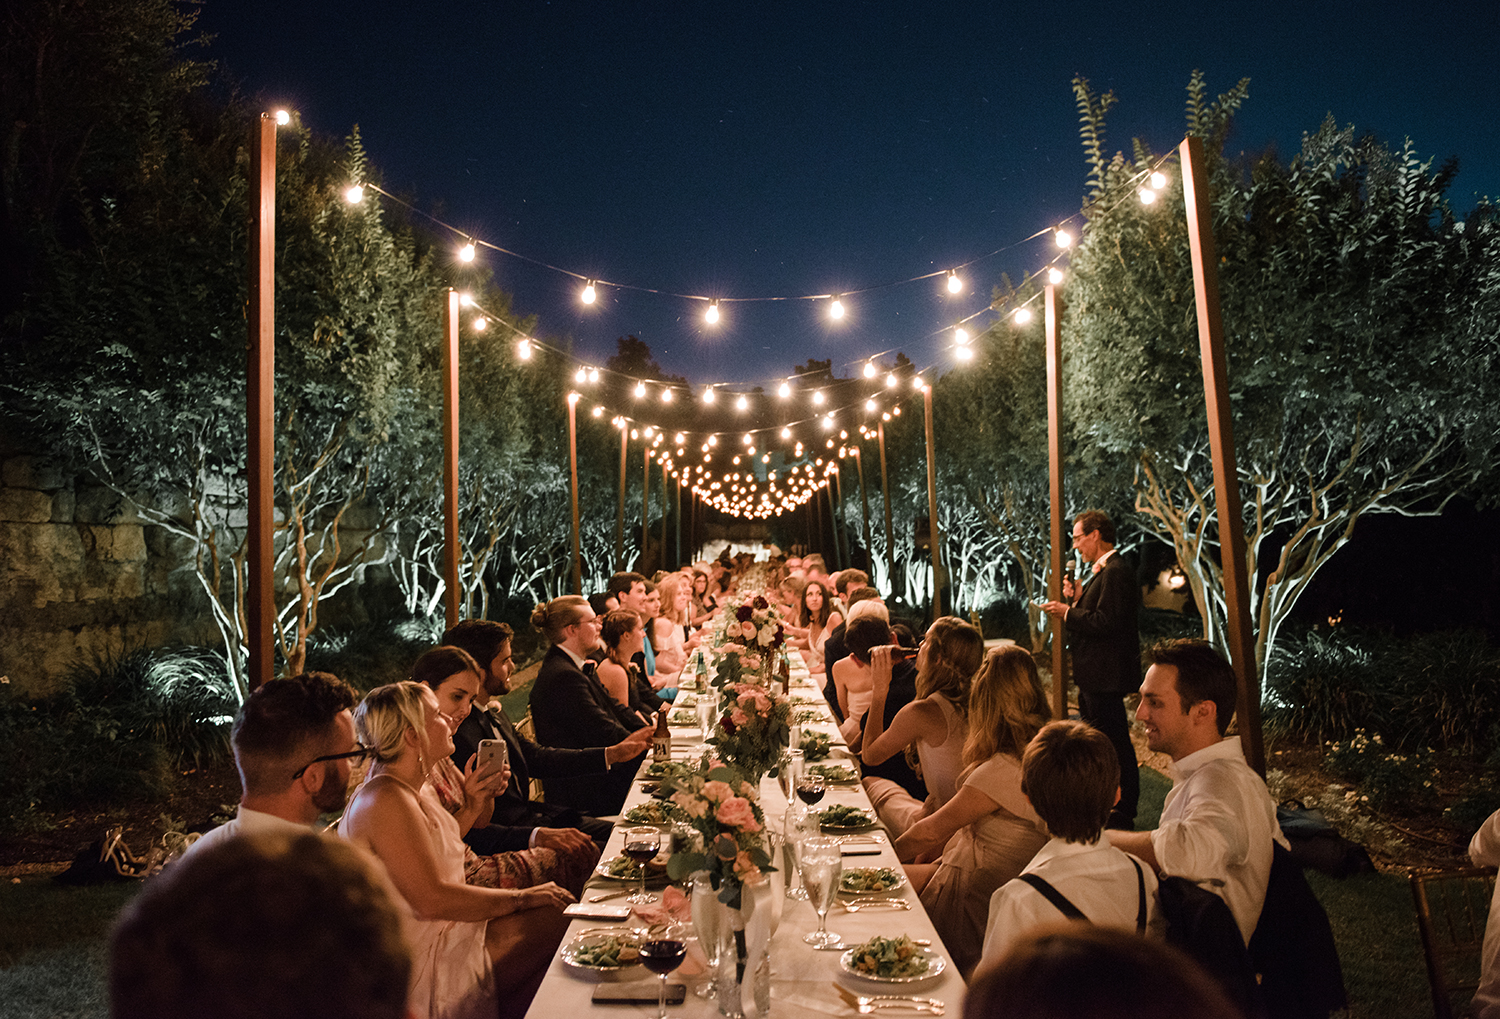 livvyland-blog-olivia-watson-wedding-villa-del-lago-austin-texas-fall-blush-burgundy-classic-romantic-farm-table-festoon-lighting-1